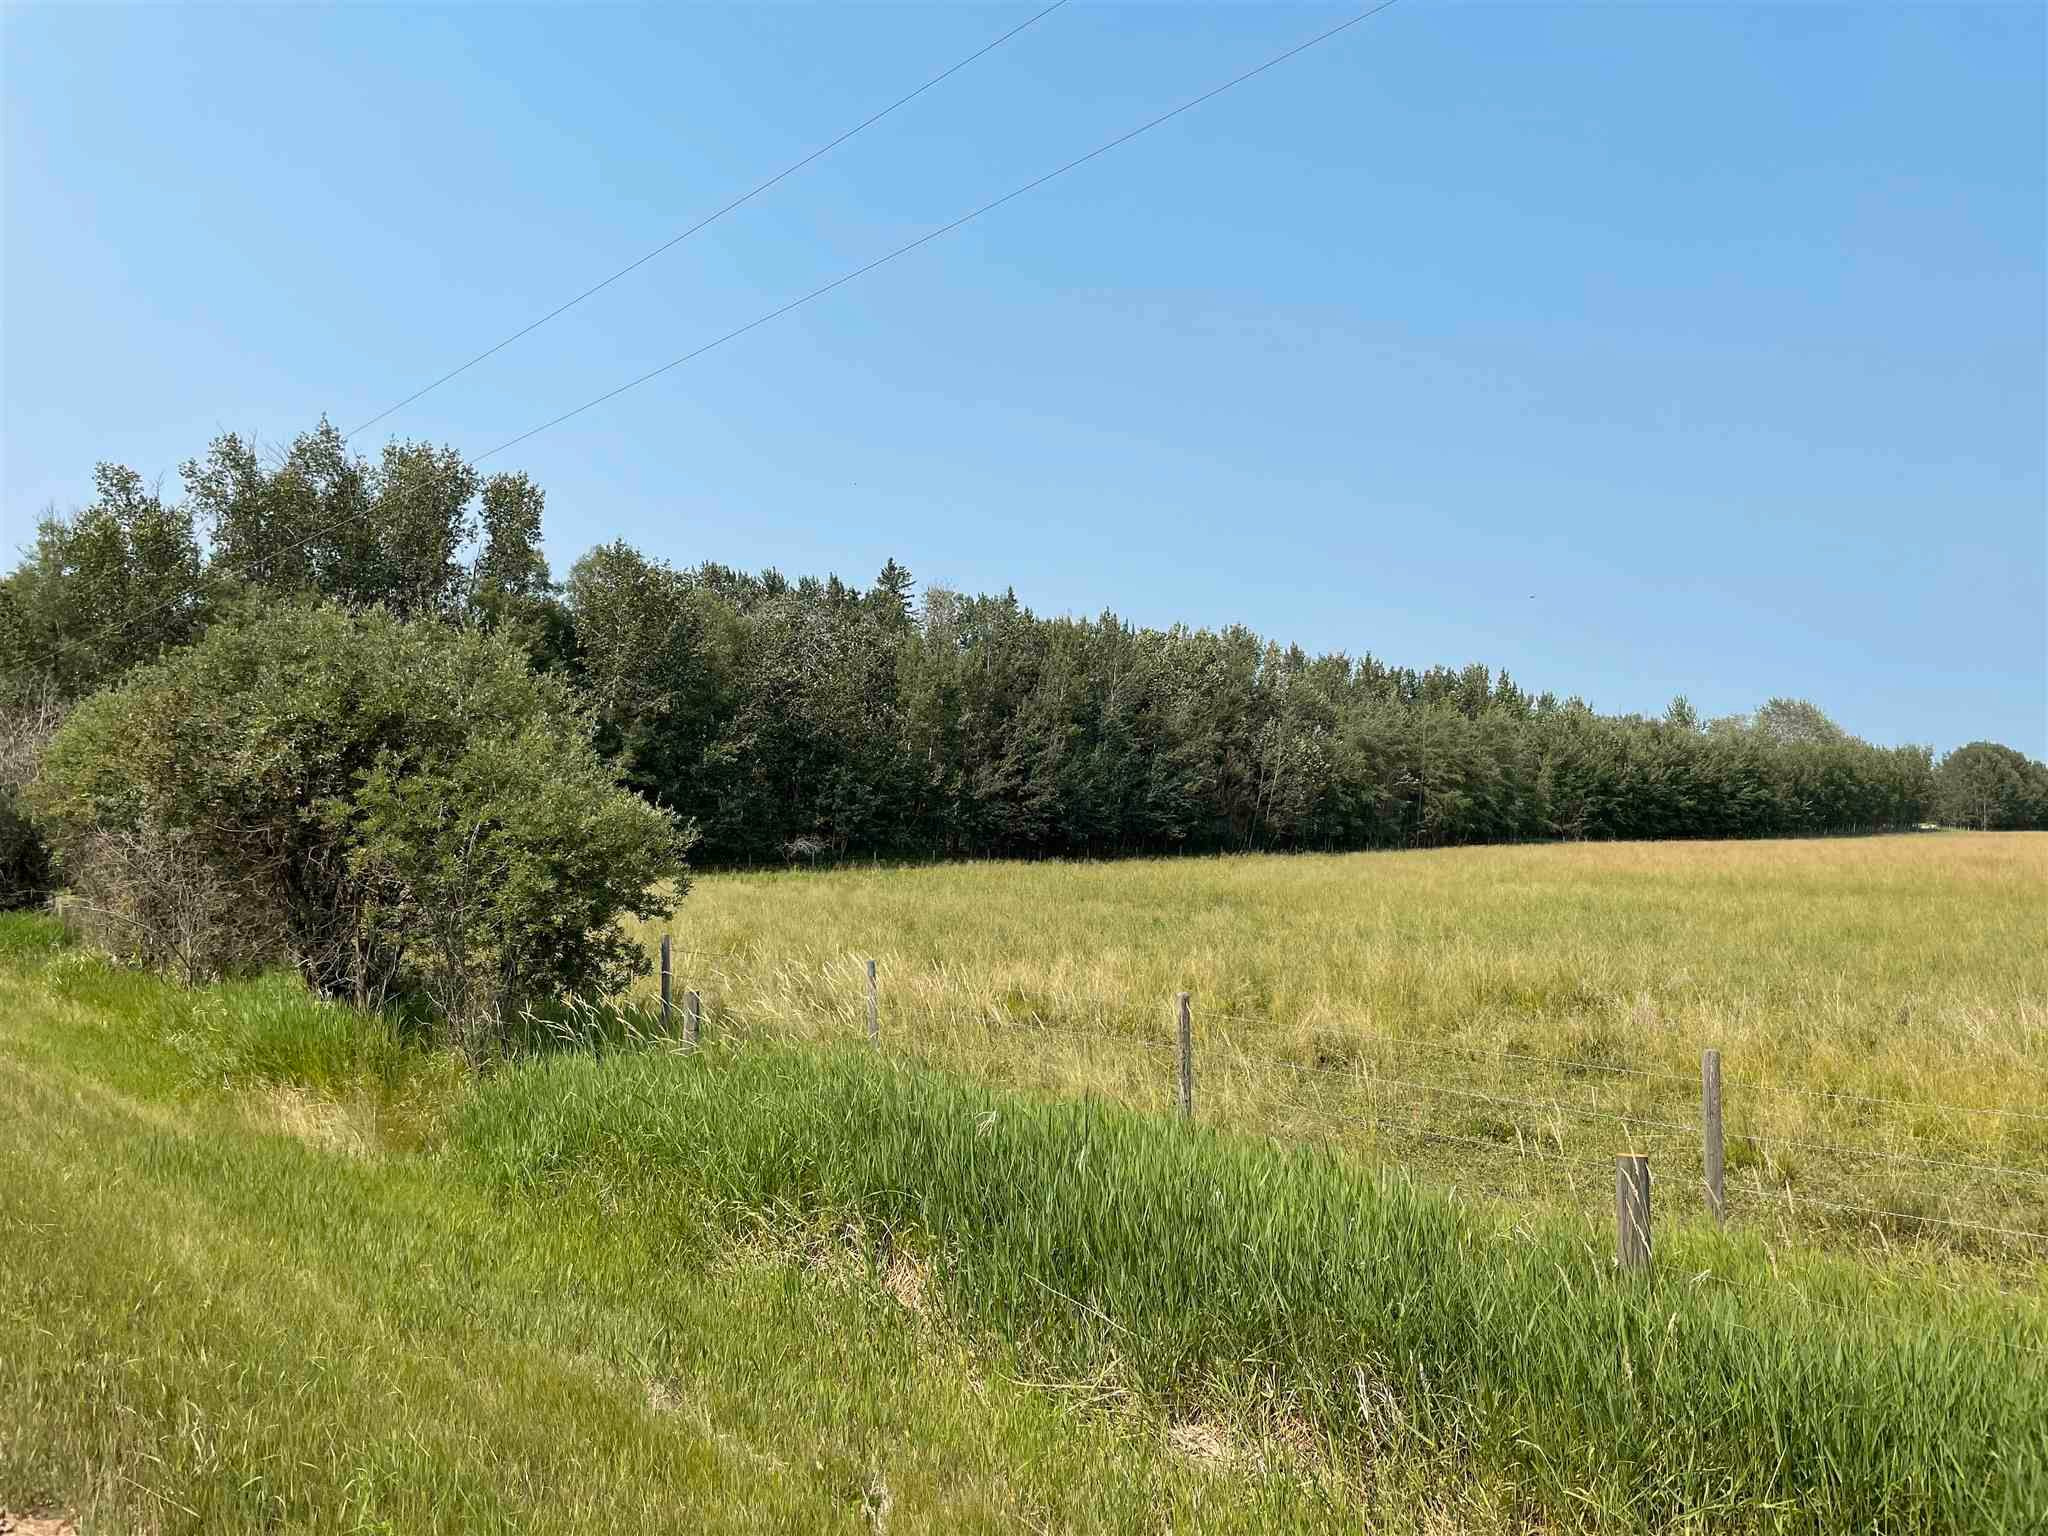 Main Photo: RGE RD 223 Twp Rd 594: Rural Thorhild County Rural Land/Vacant Lot for sale : MLS®# E4256609